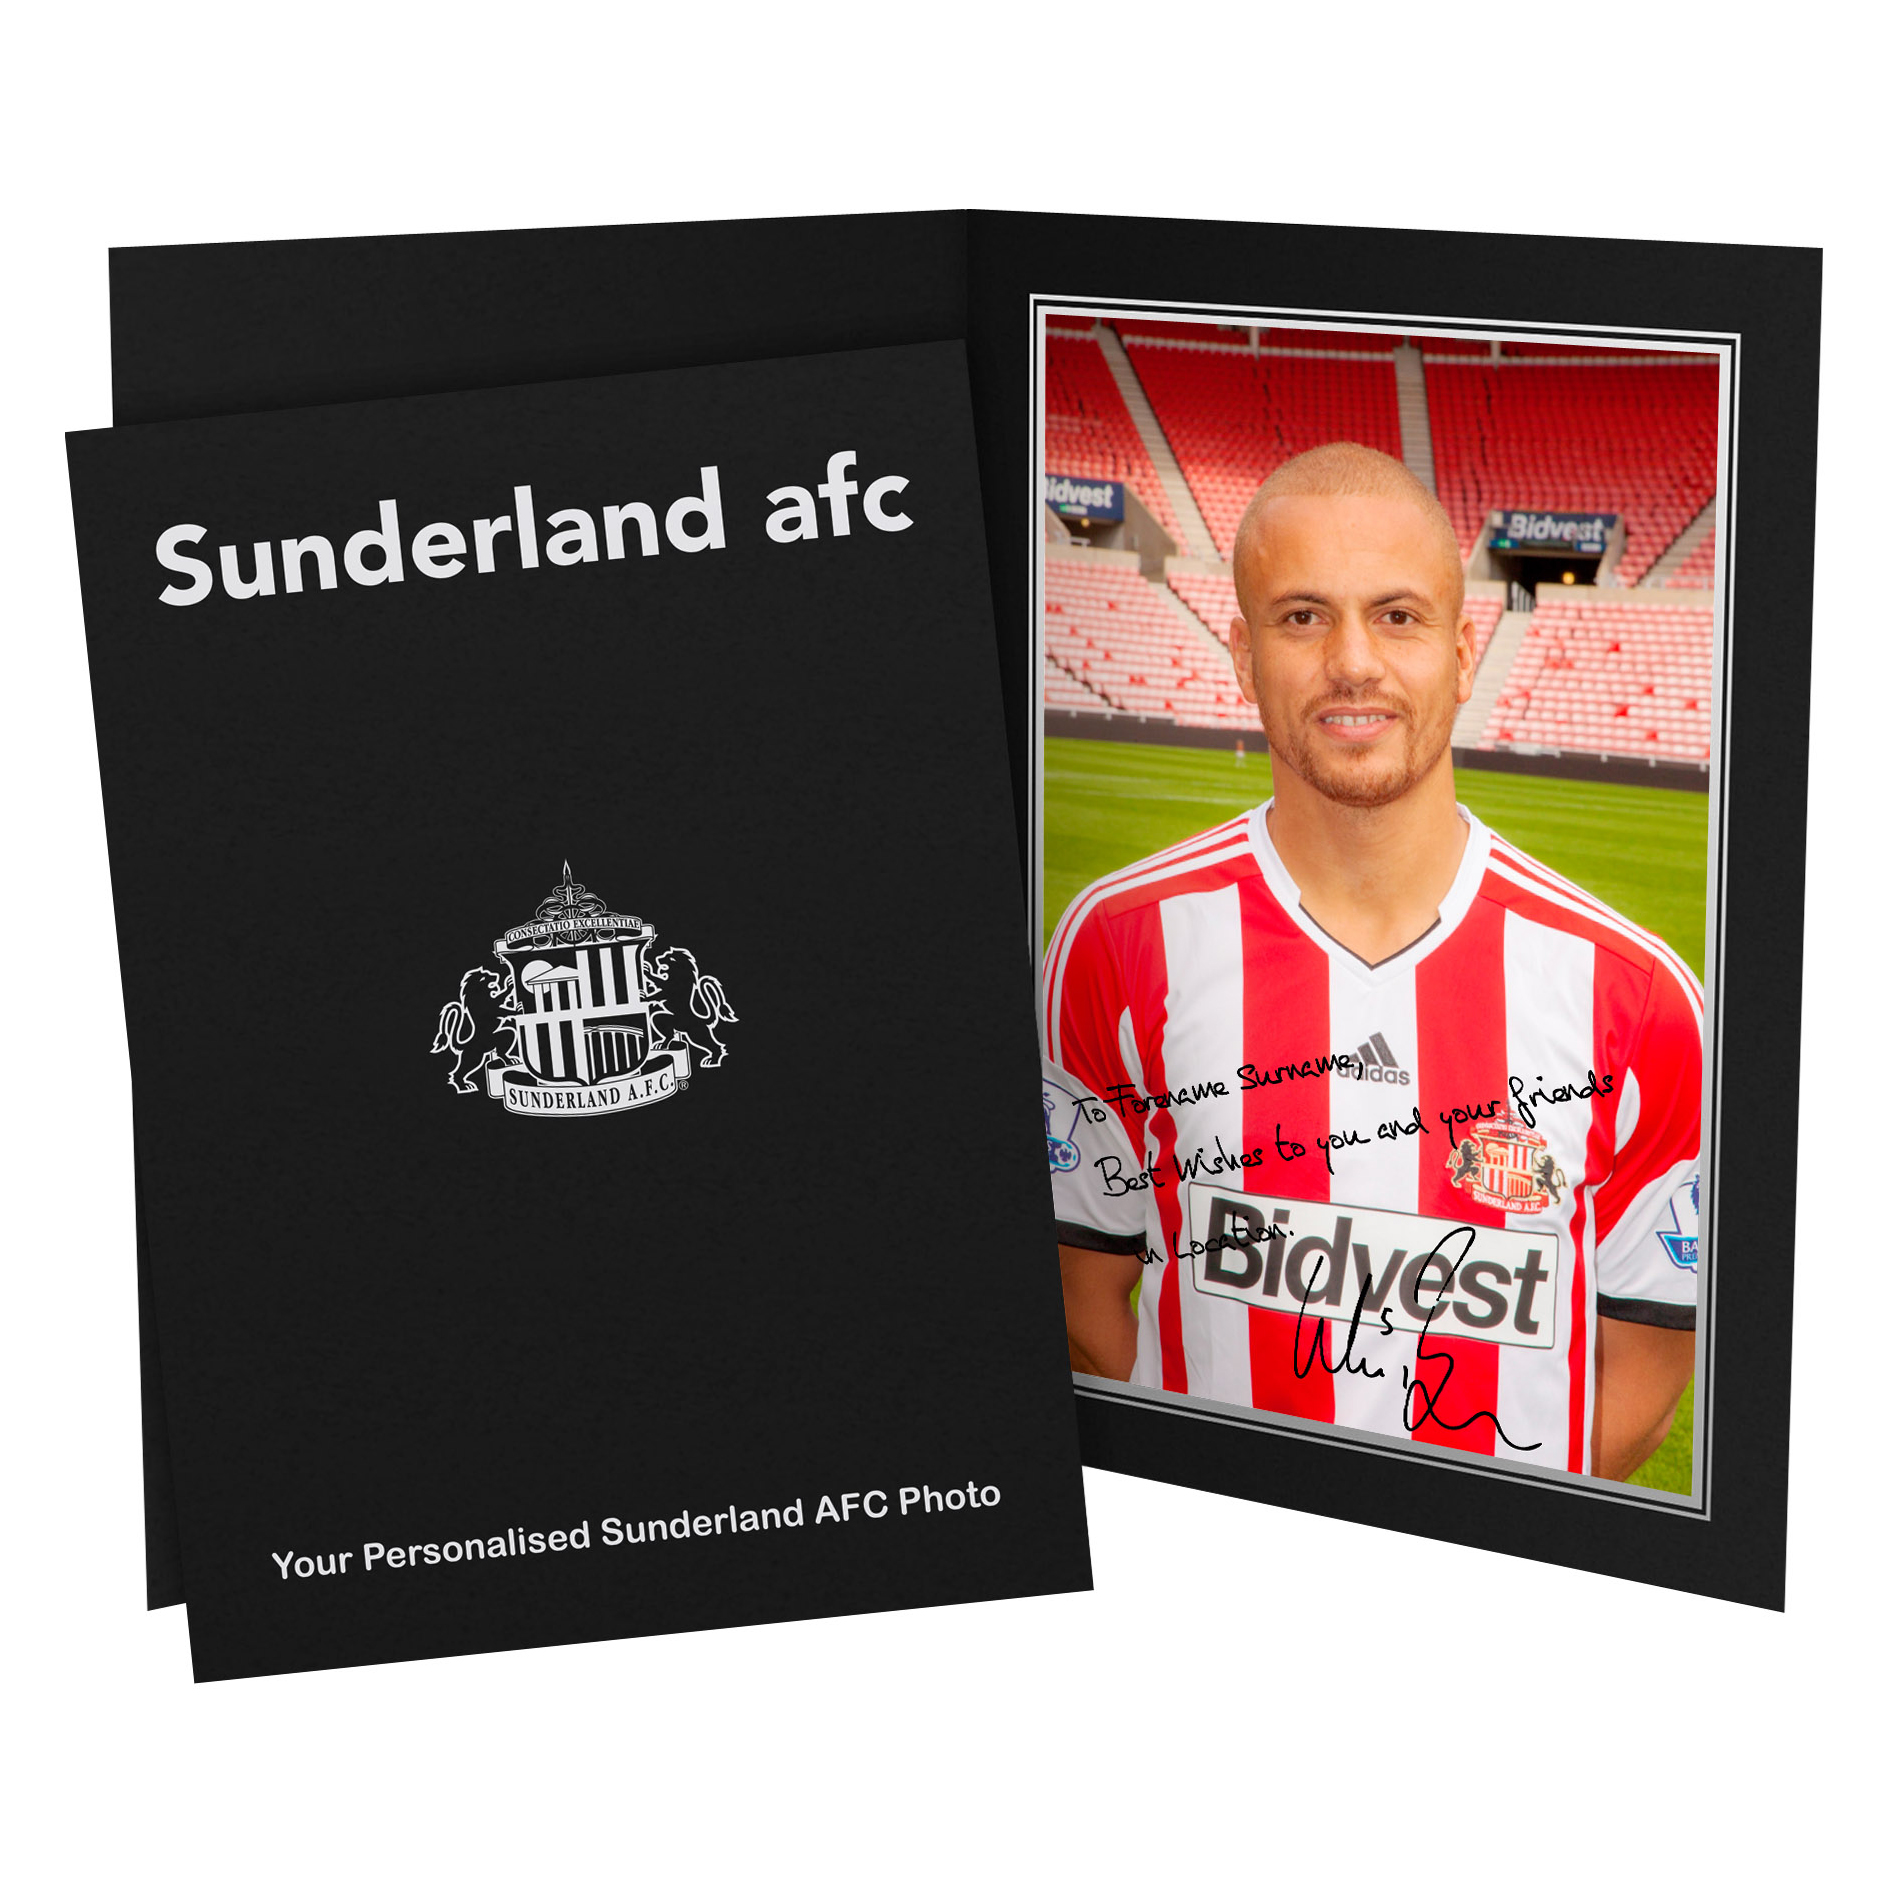 Sunderland Personalised Signature Photo in Presentation Folder - Brown